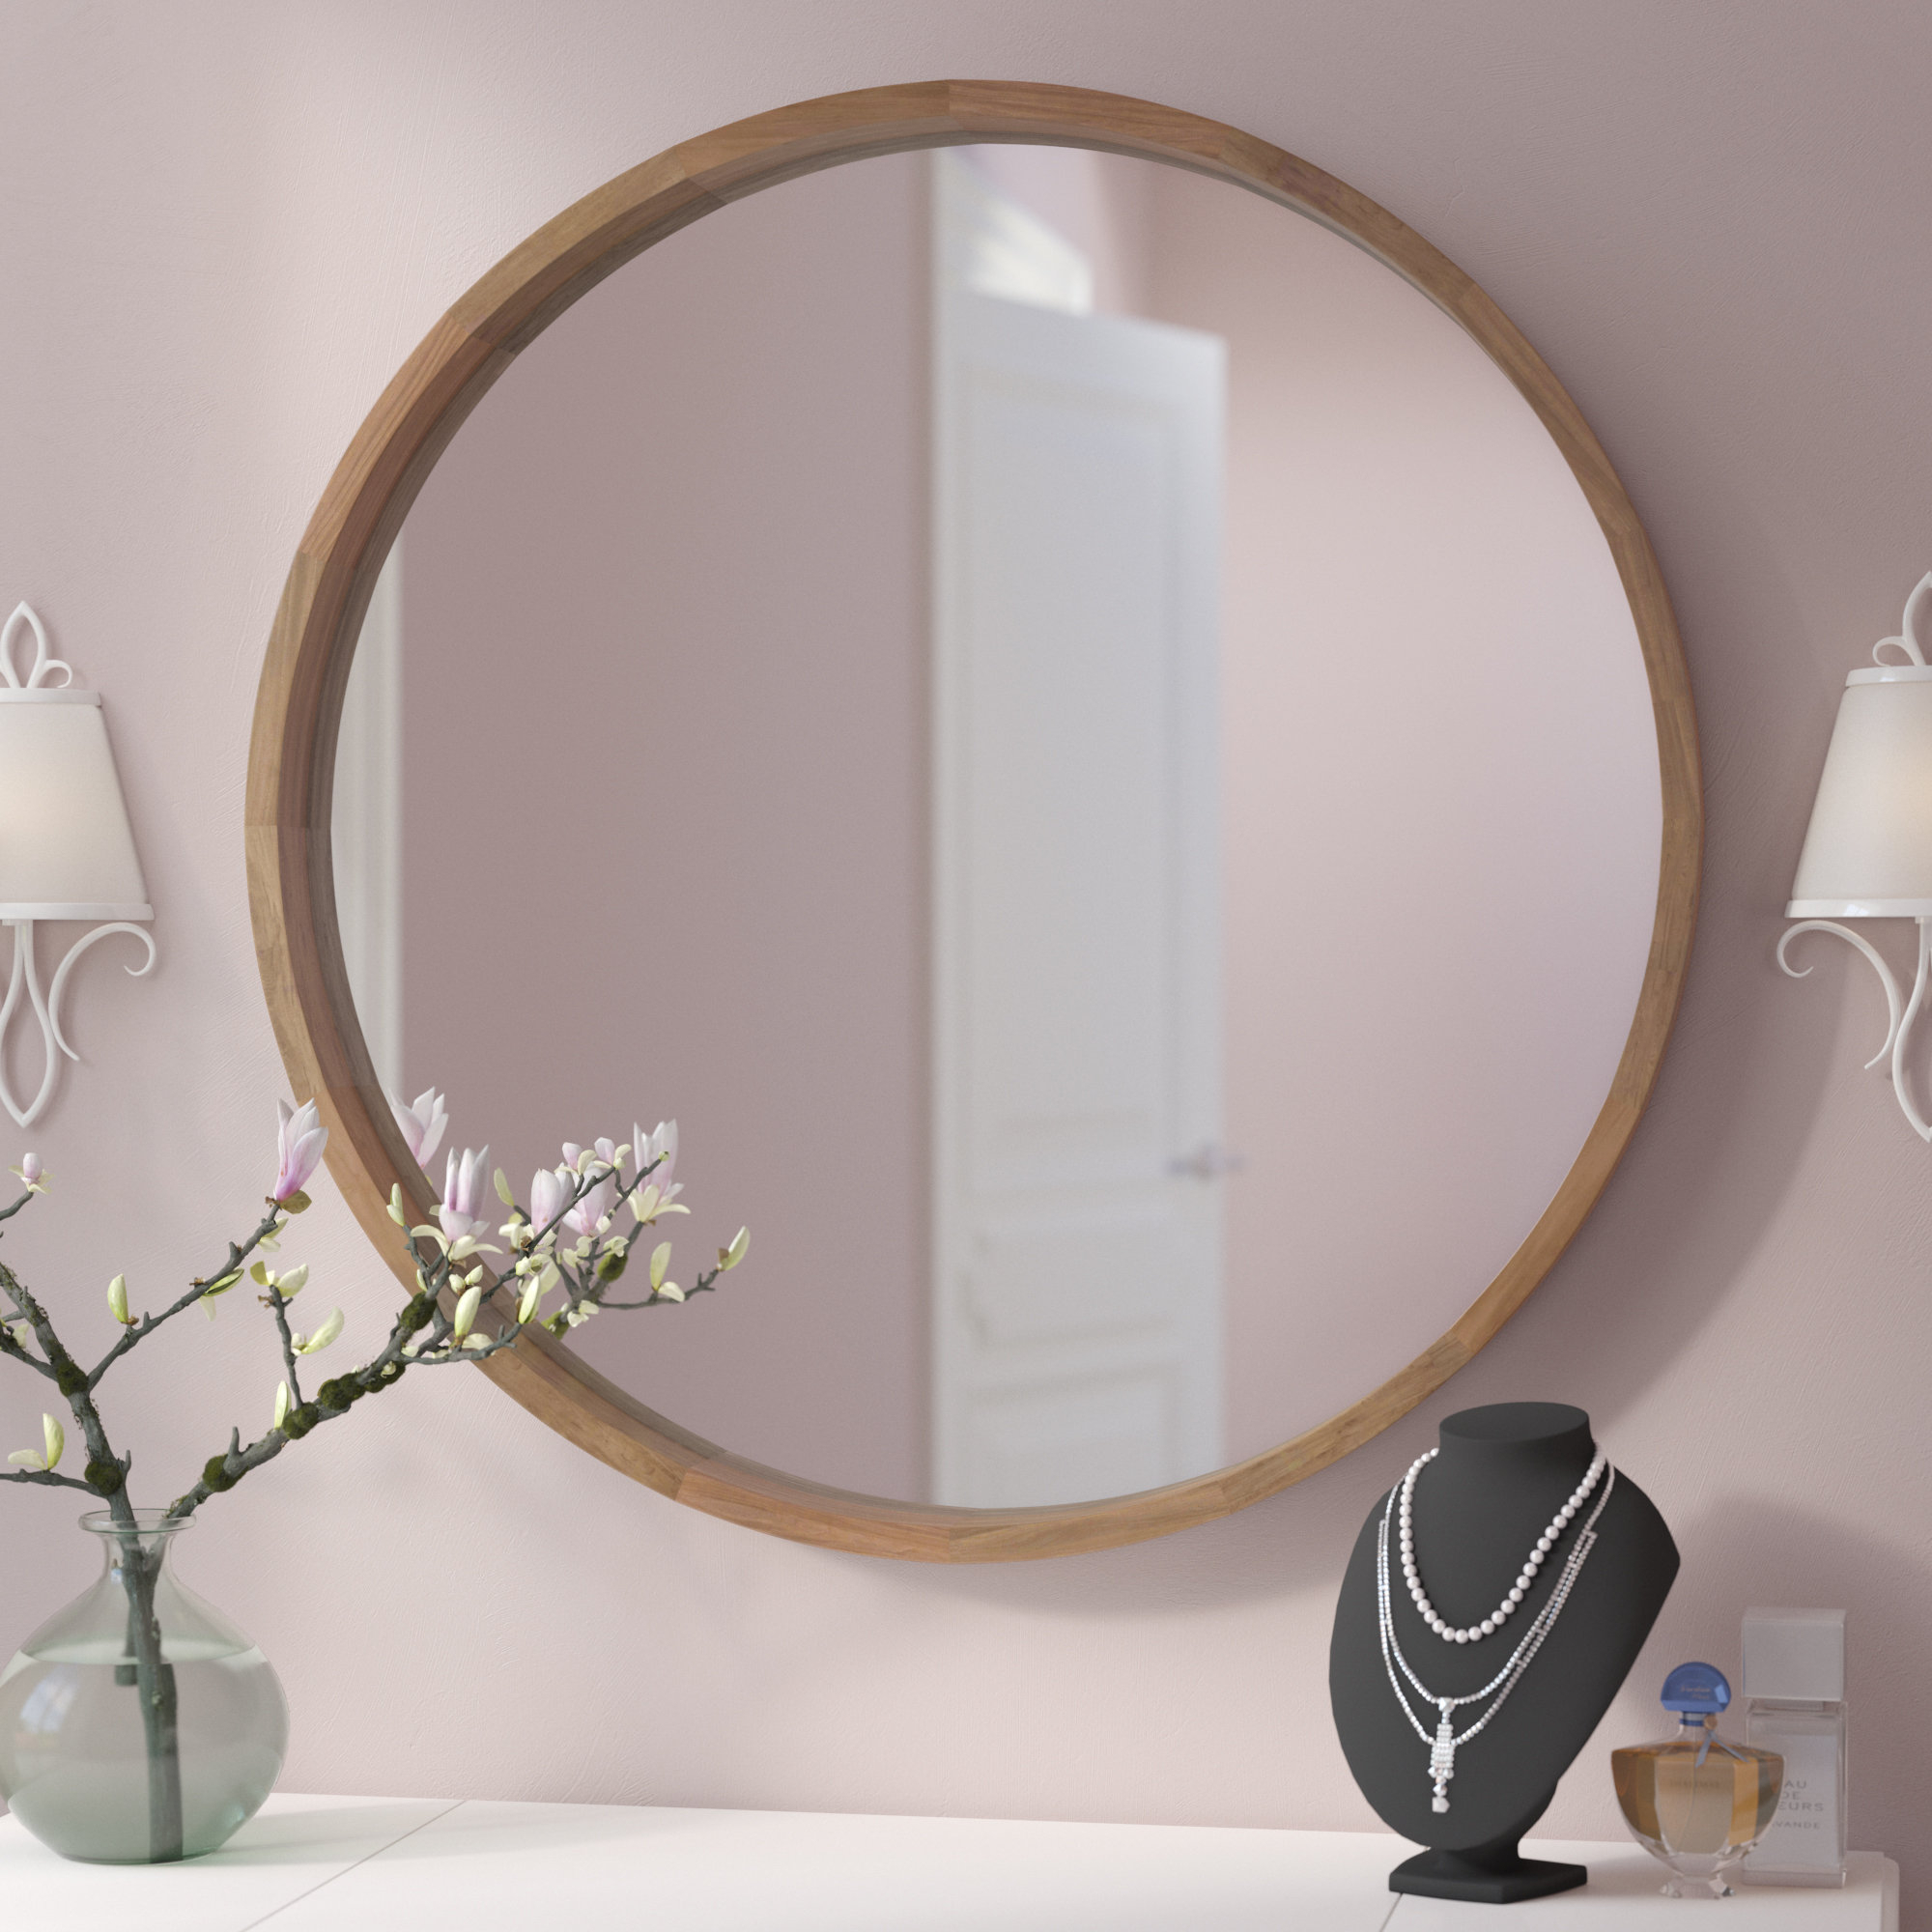 Loftis Modern & Contemporary Accent Wall Mirror In Wood Accent Mirrors (View 4 of 20)